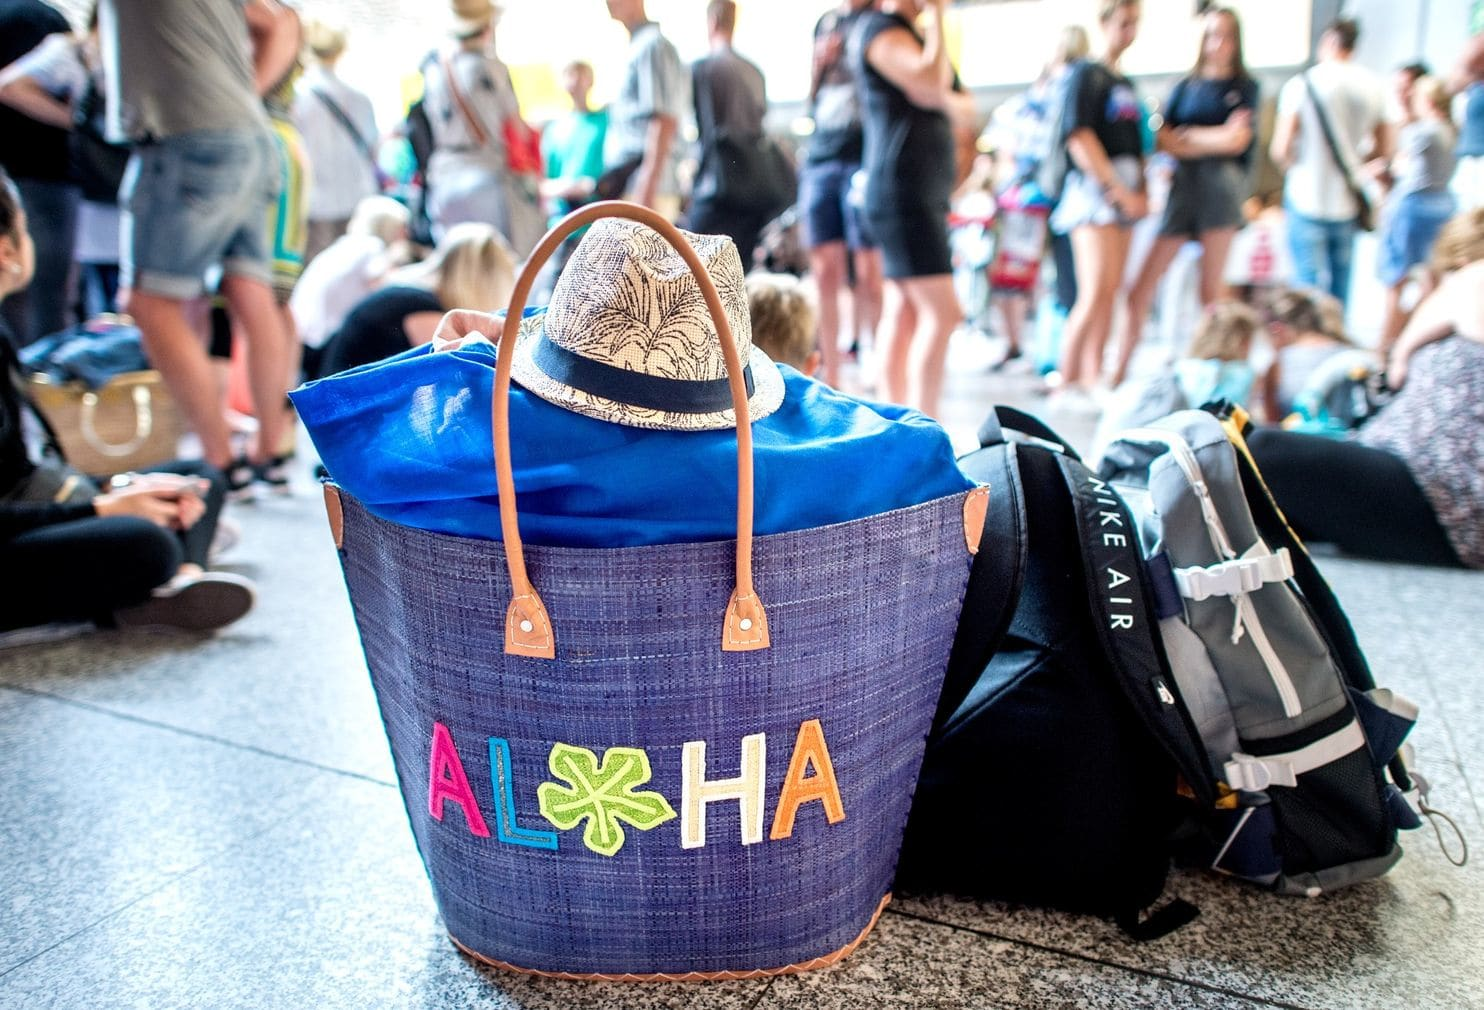 """Aloha"" means a lot to those with Hawaiian roots. It's not for sale. (Hauke-Christian Dittrich/Picture Alliance/Getty Images)"